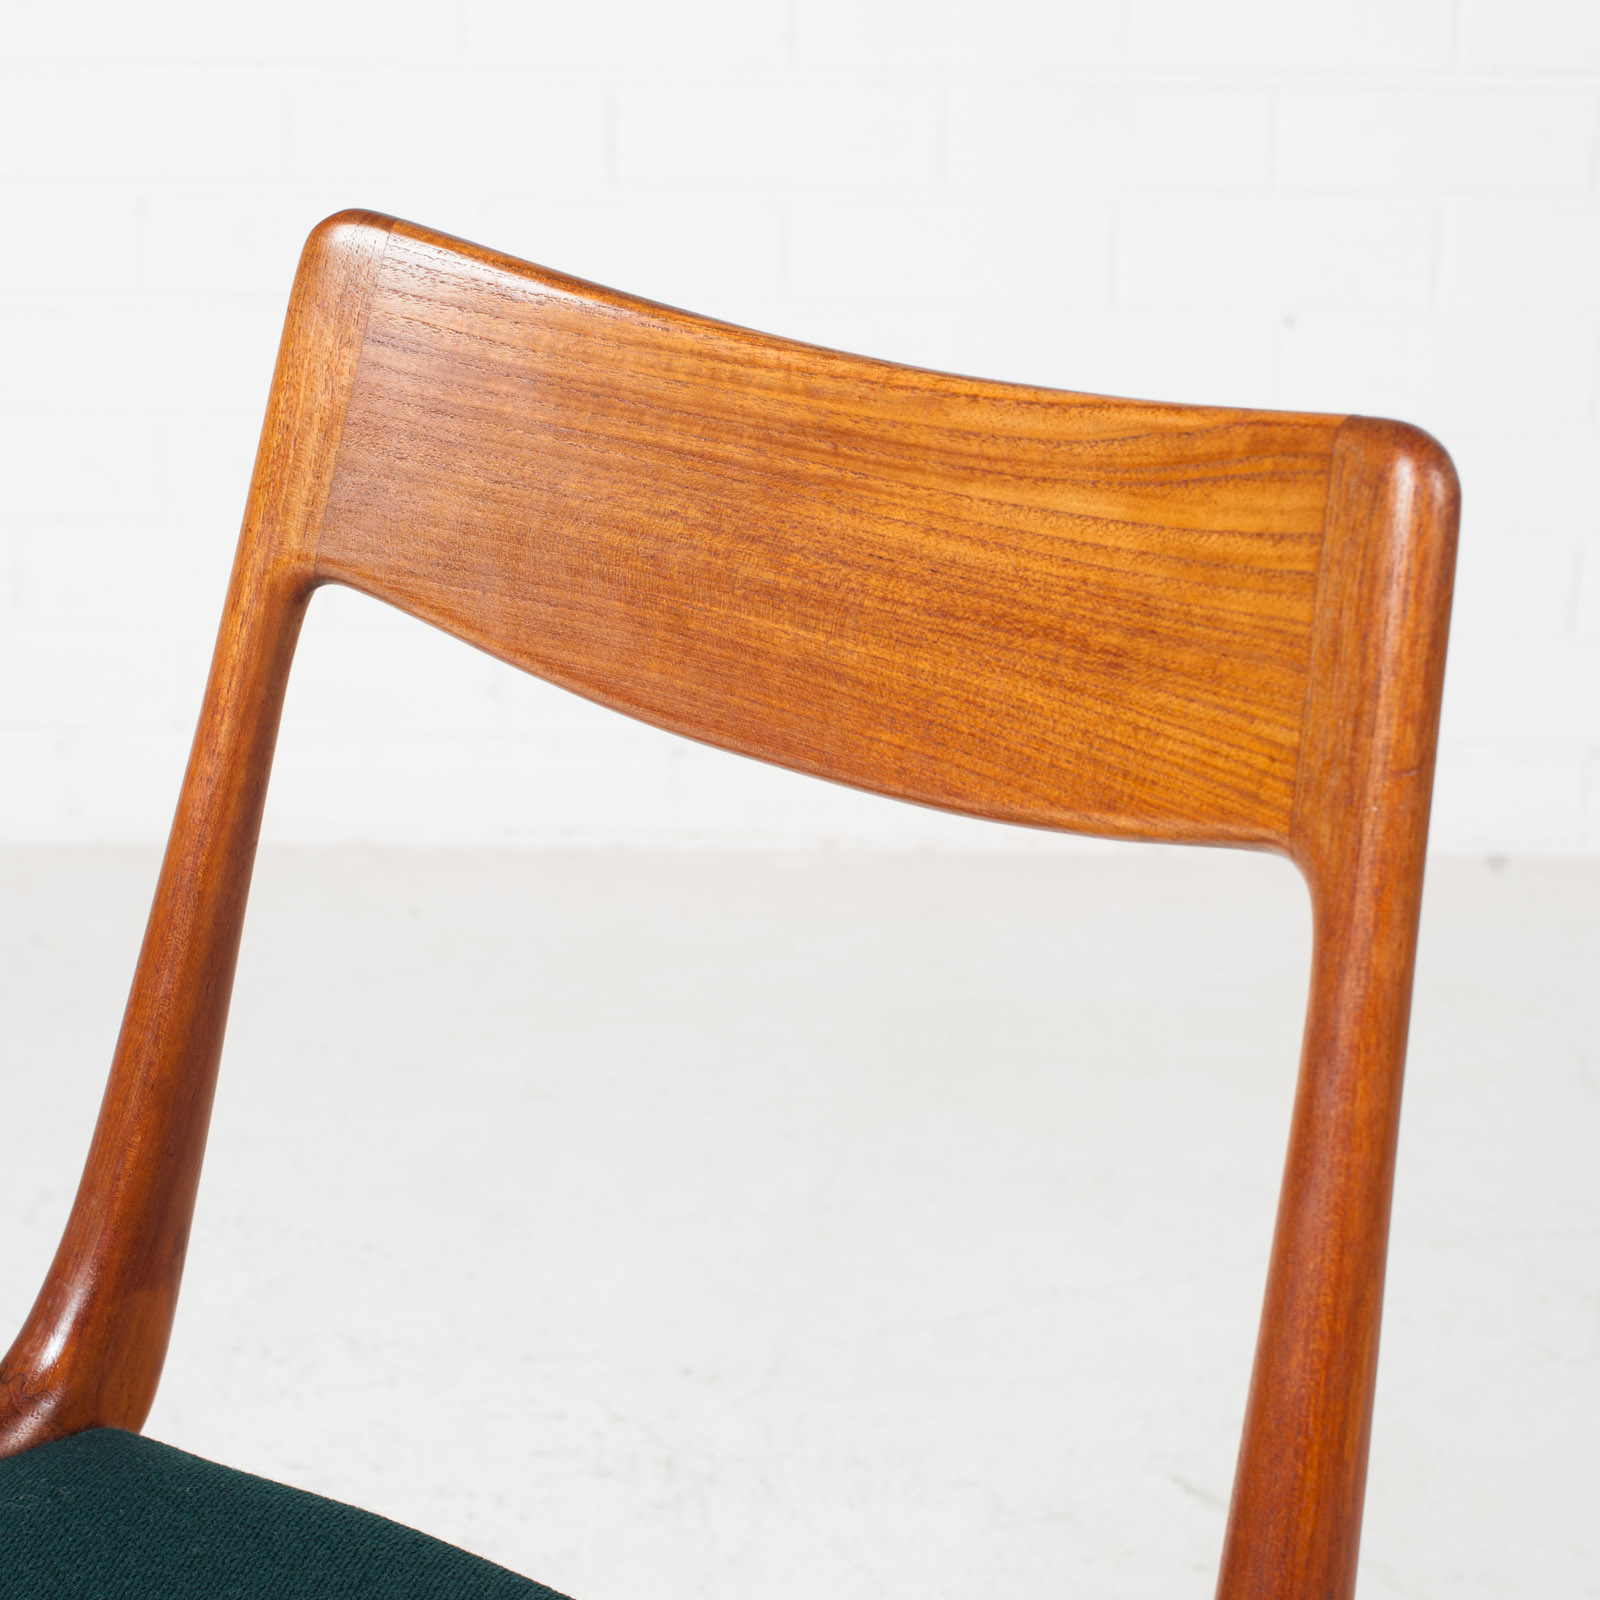 Set Of 6 Model 370 'boomerang' Dining Chair By Alfred Christensen In Teak For Slagelse Mobelfabrik 1950s Denmark 05